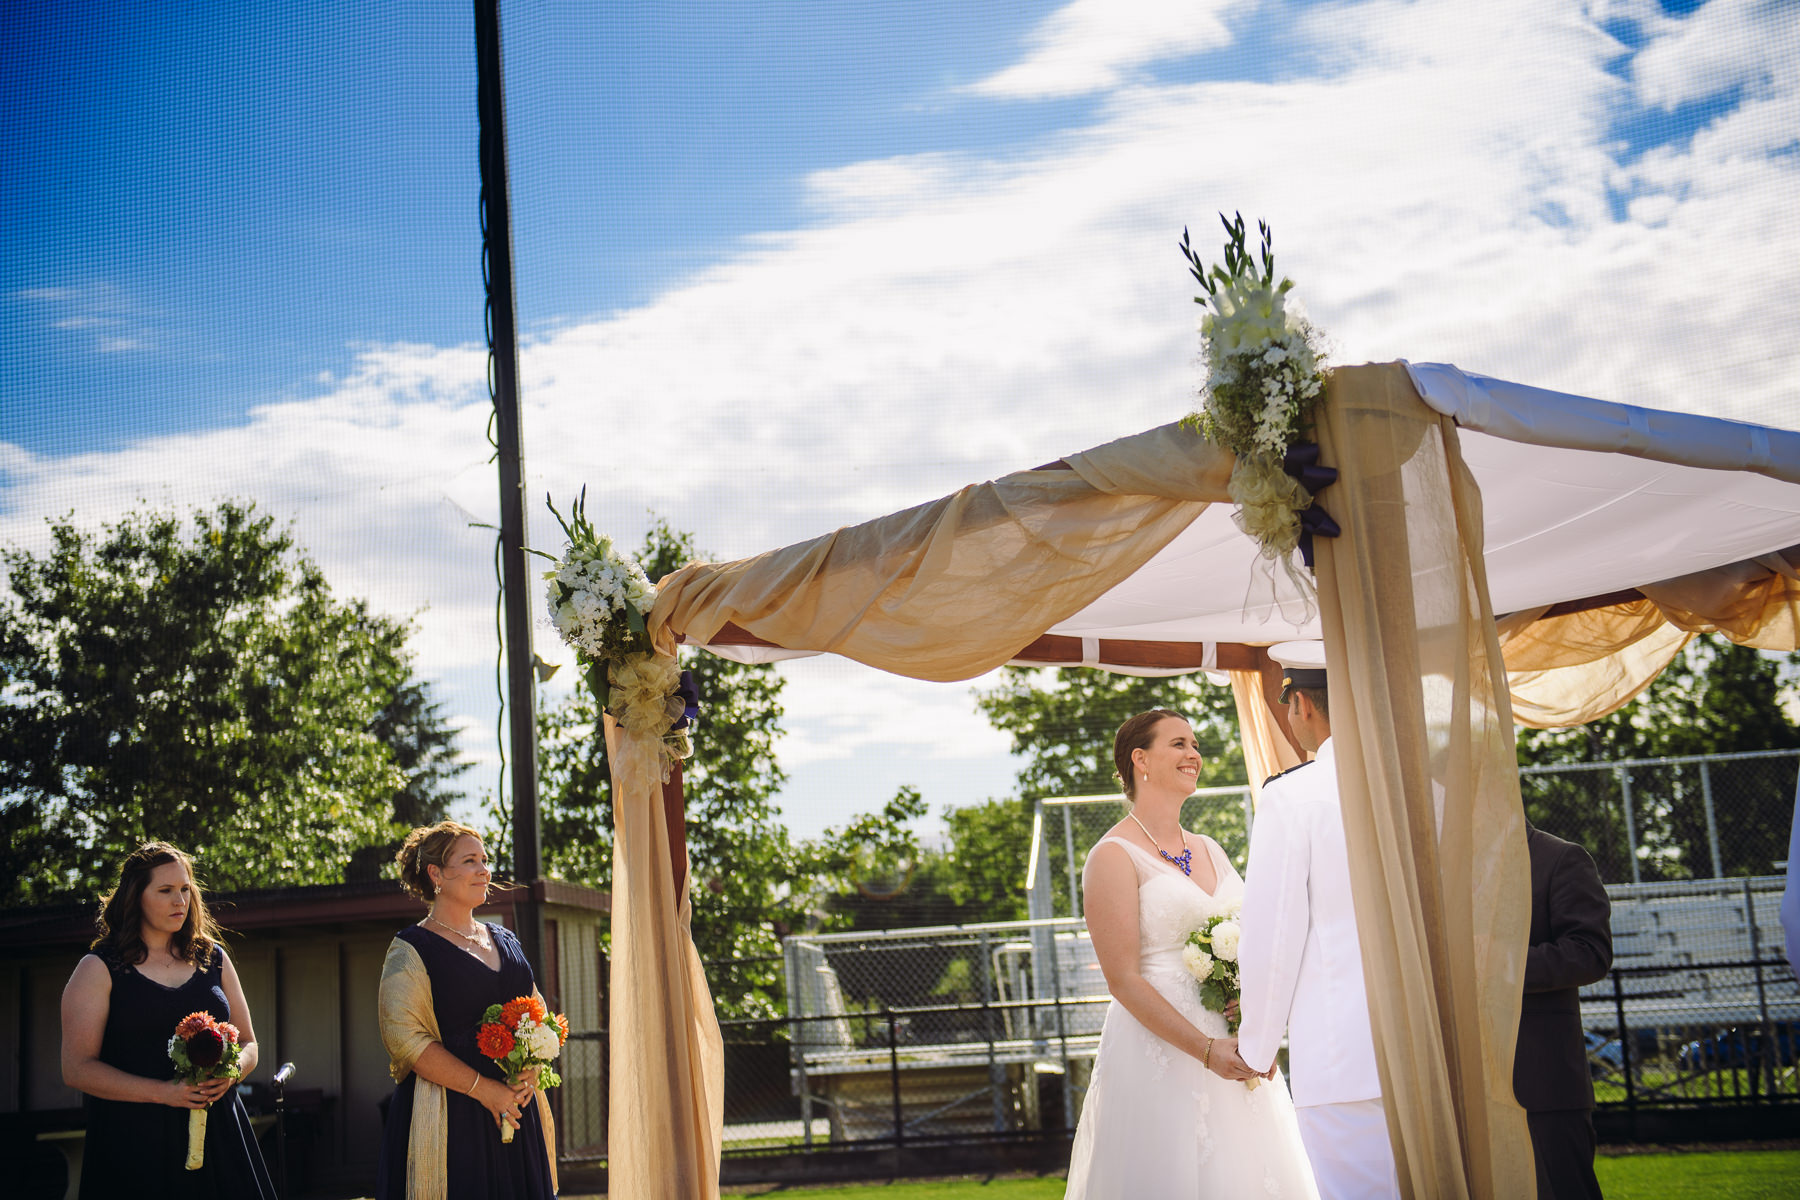 university-of-puget-sound-baseball-feild-wedding-photos-34